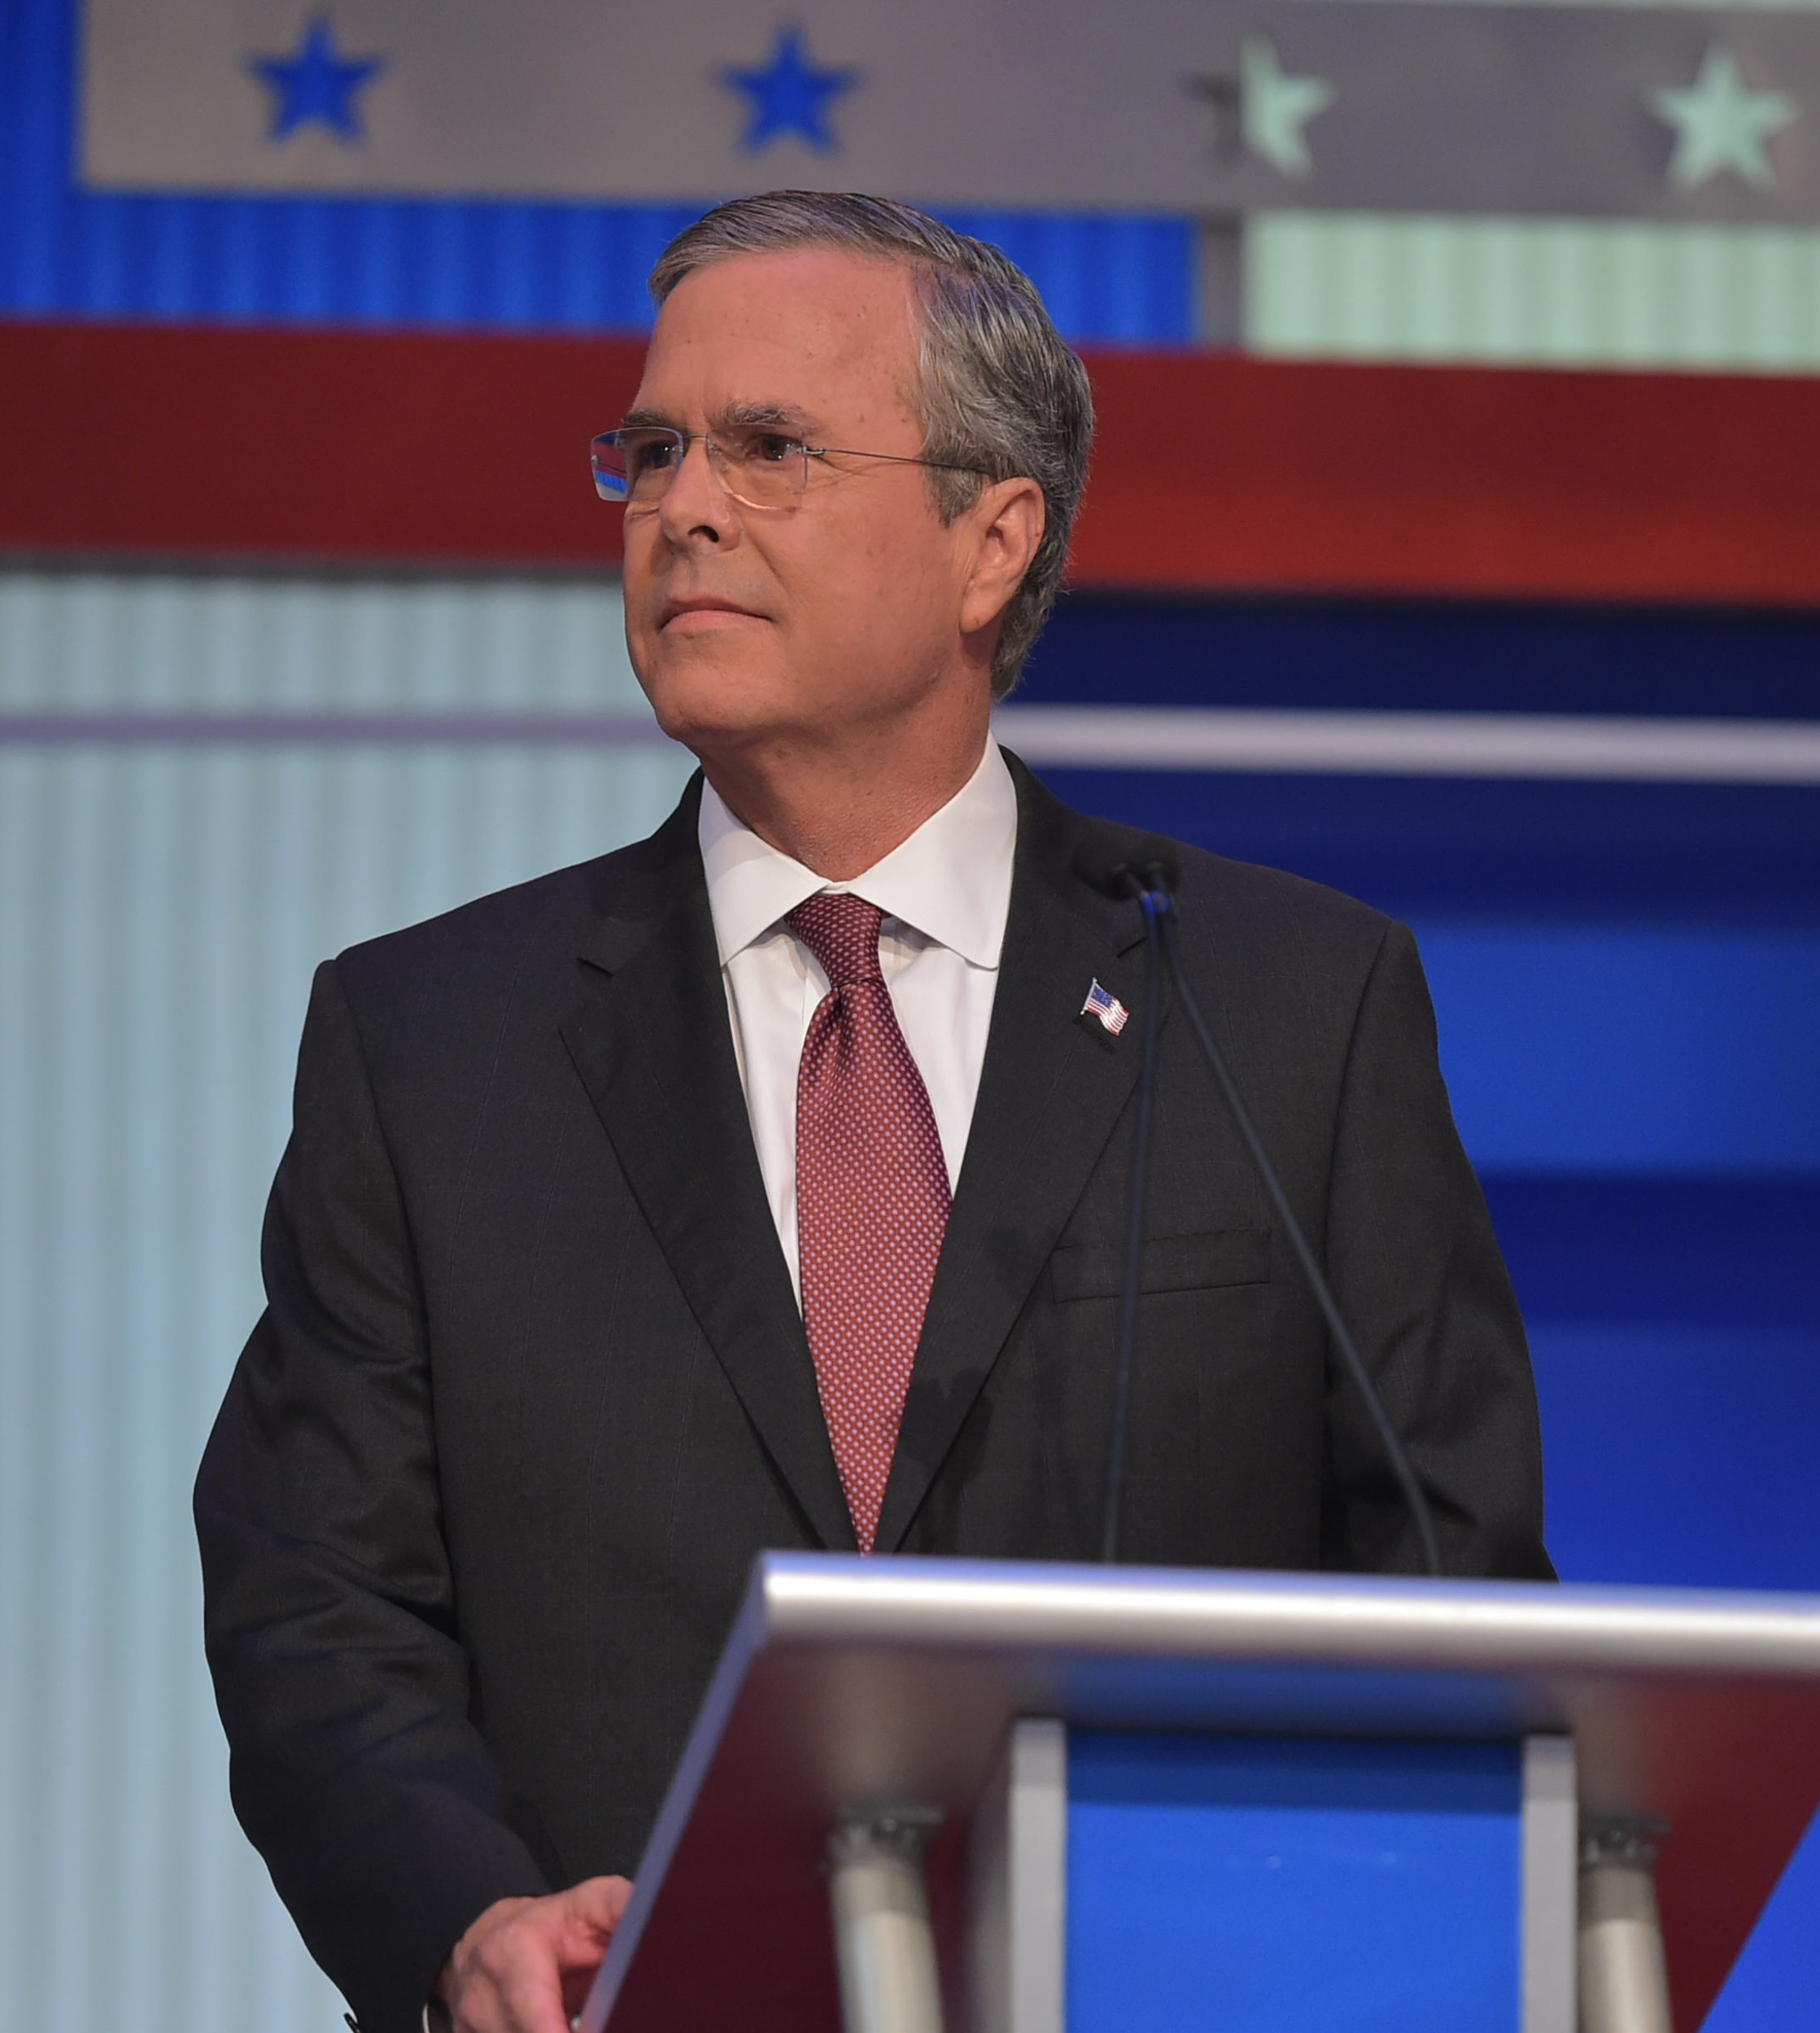 Jeb Bush Quotes Jeb Bush's Planned Parenthood Quotes At Gop Debate Focused On